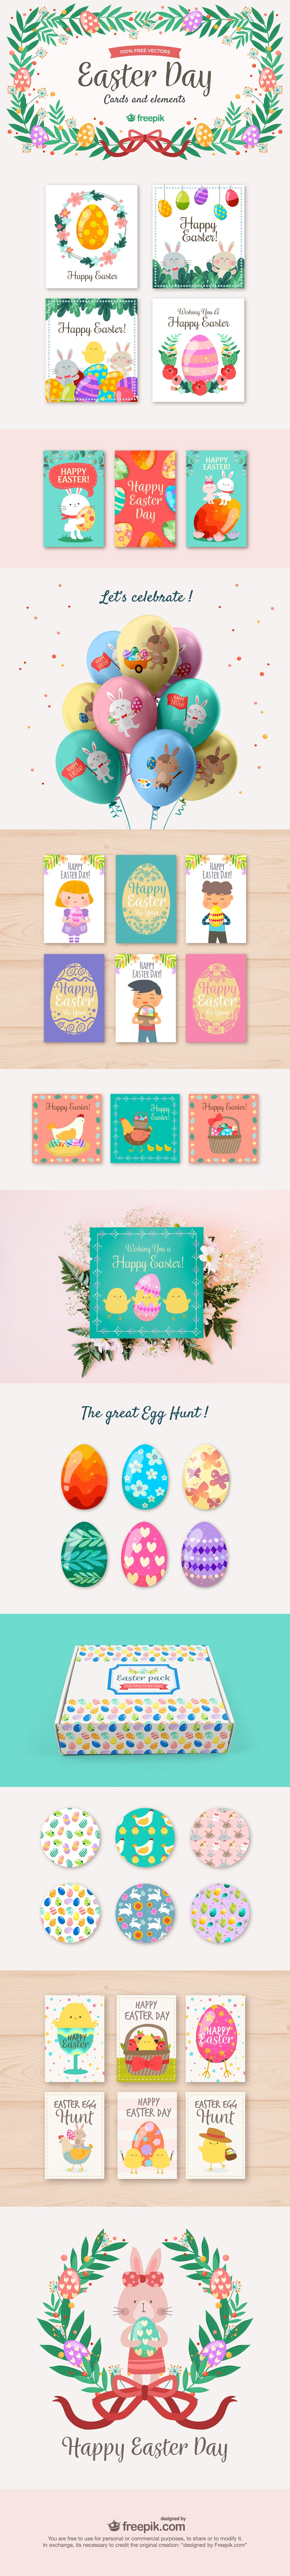 free Easter elements and cards